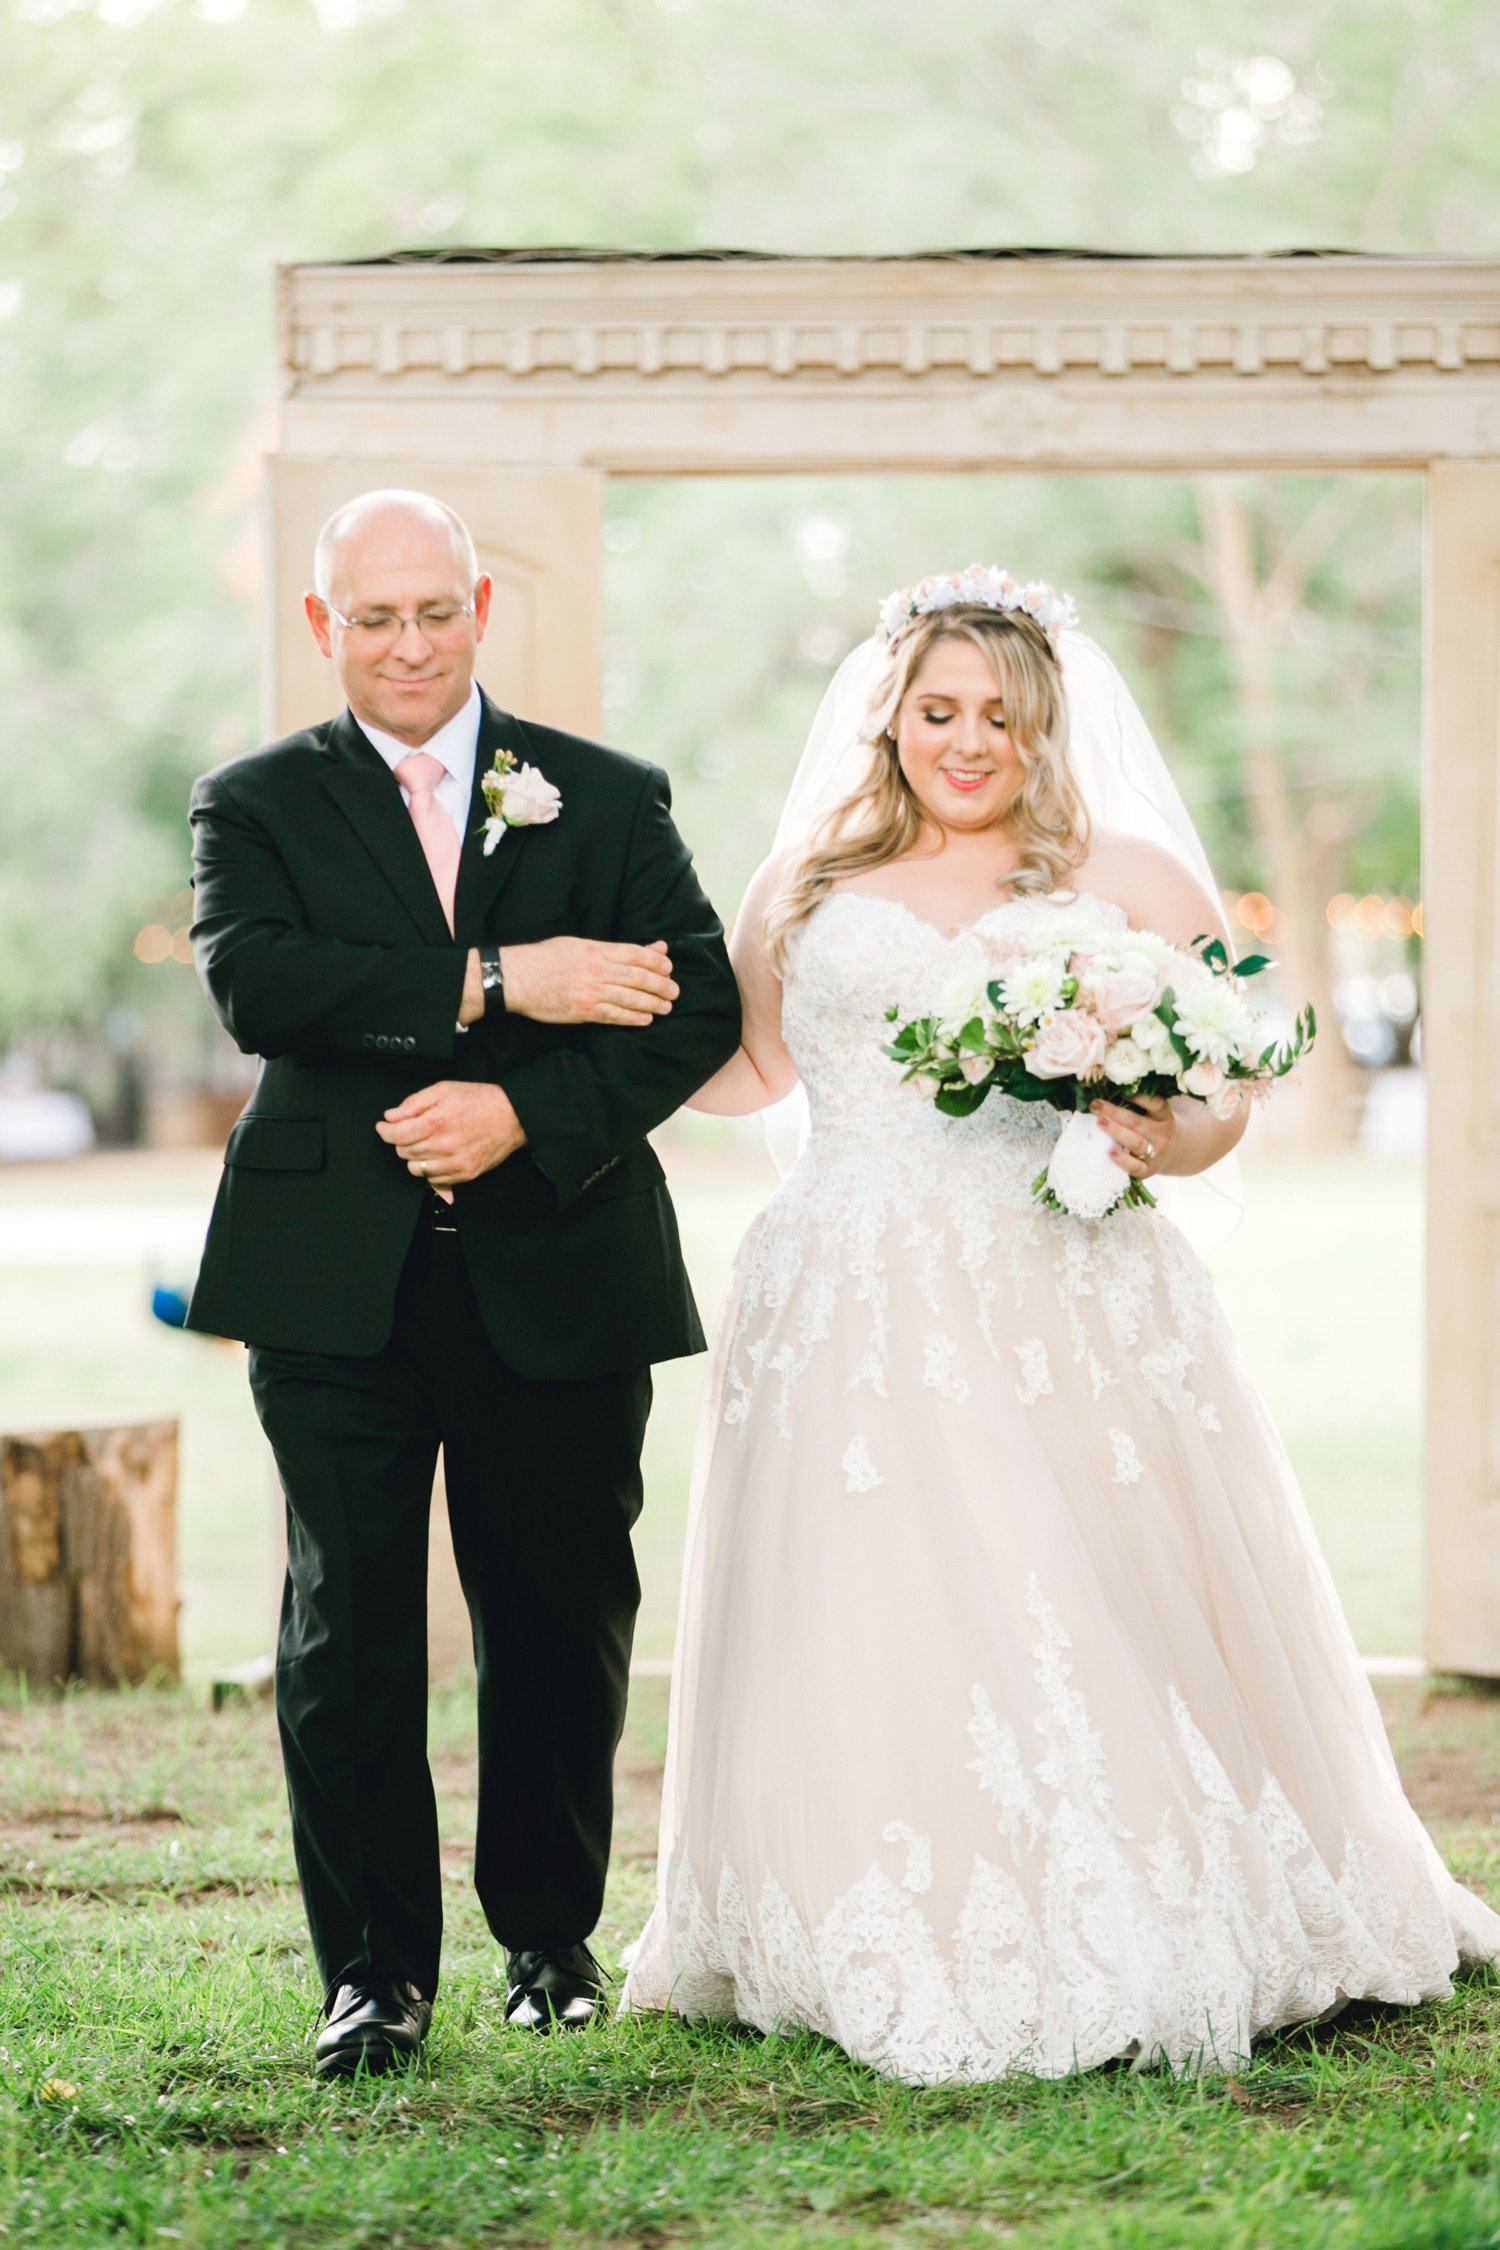 SARAH_AND_GEOFFREY_SHARP_SPIRIT_RANCH_WEDDING_ALLEEJ_LUBBOCK_TX_0036.jpg